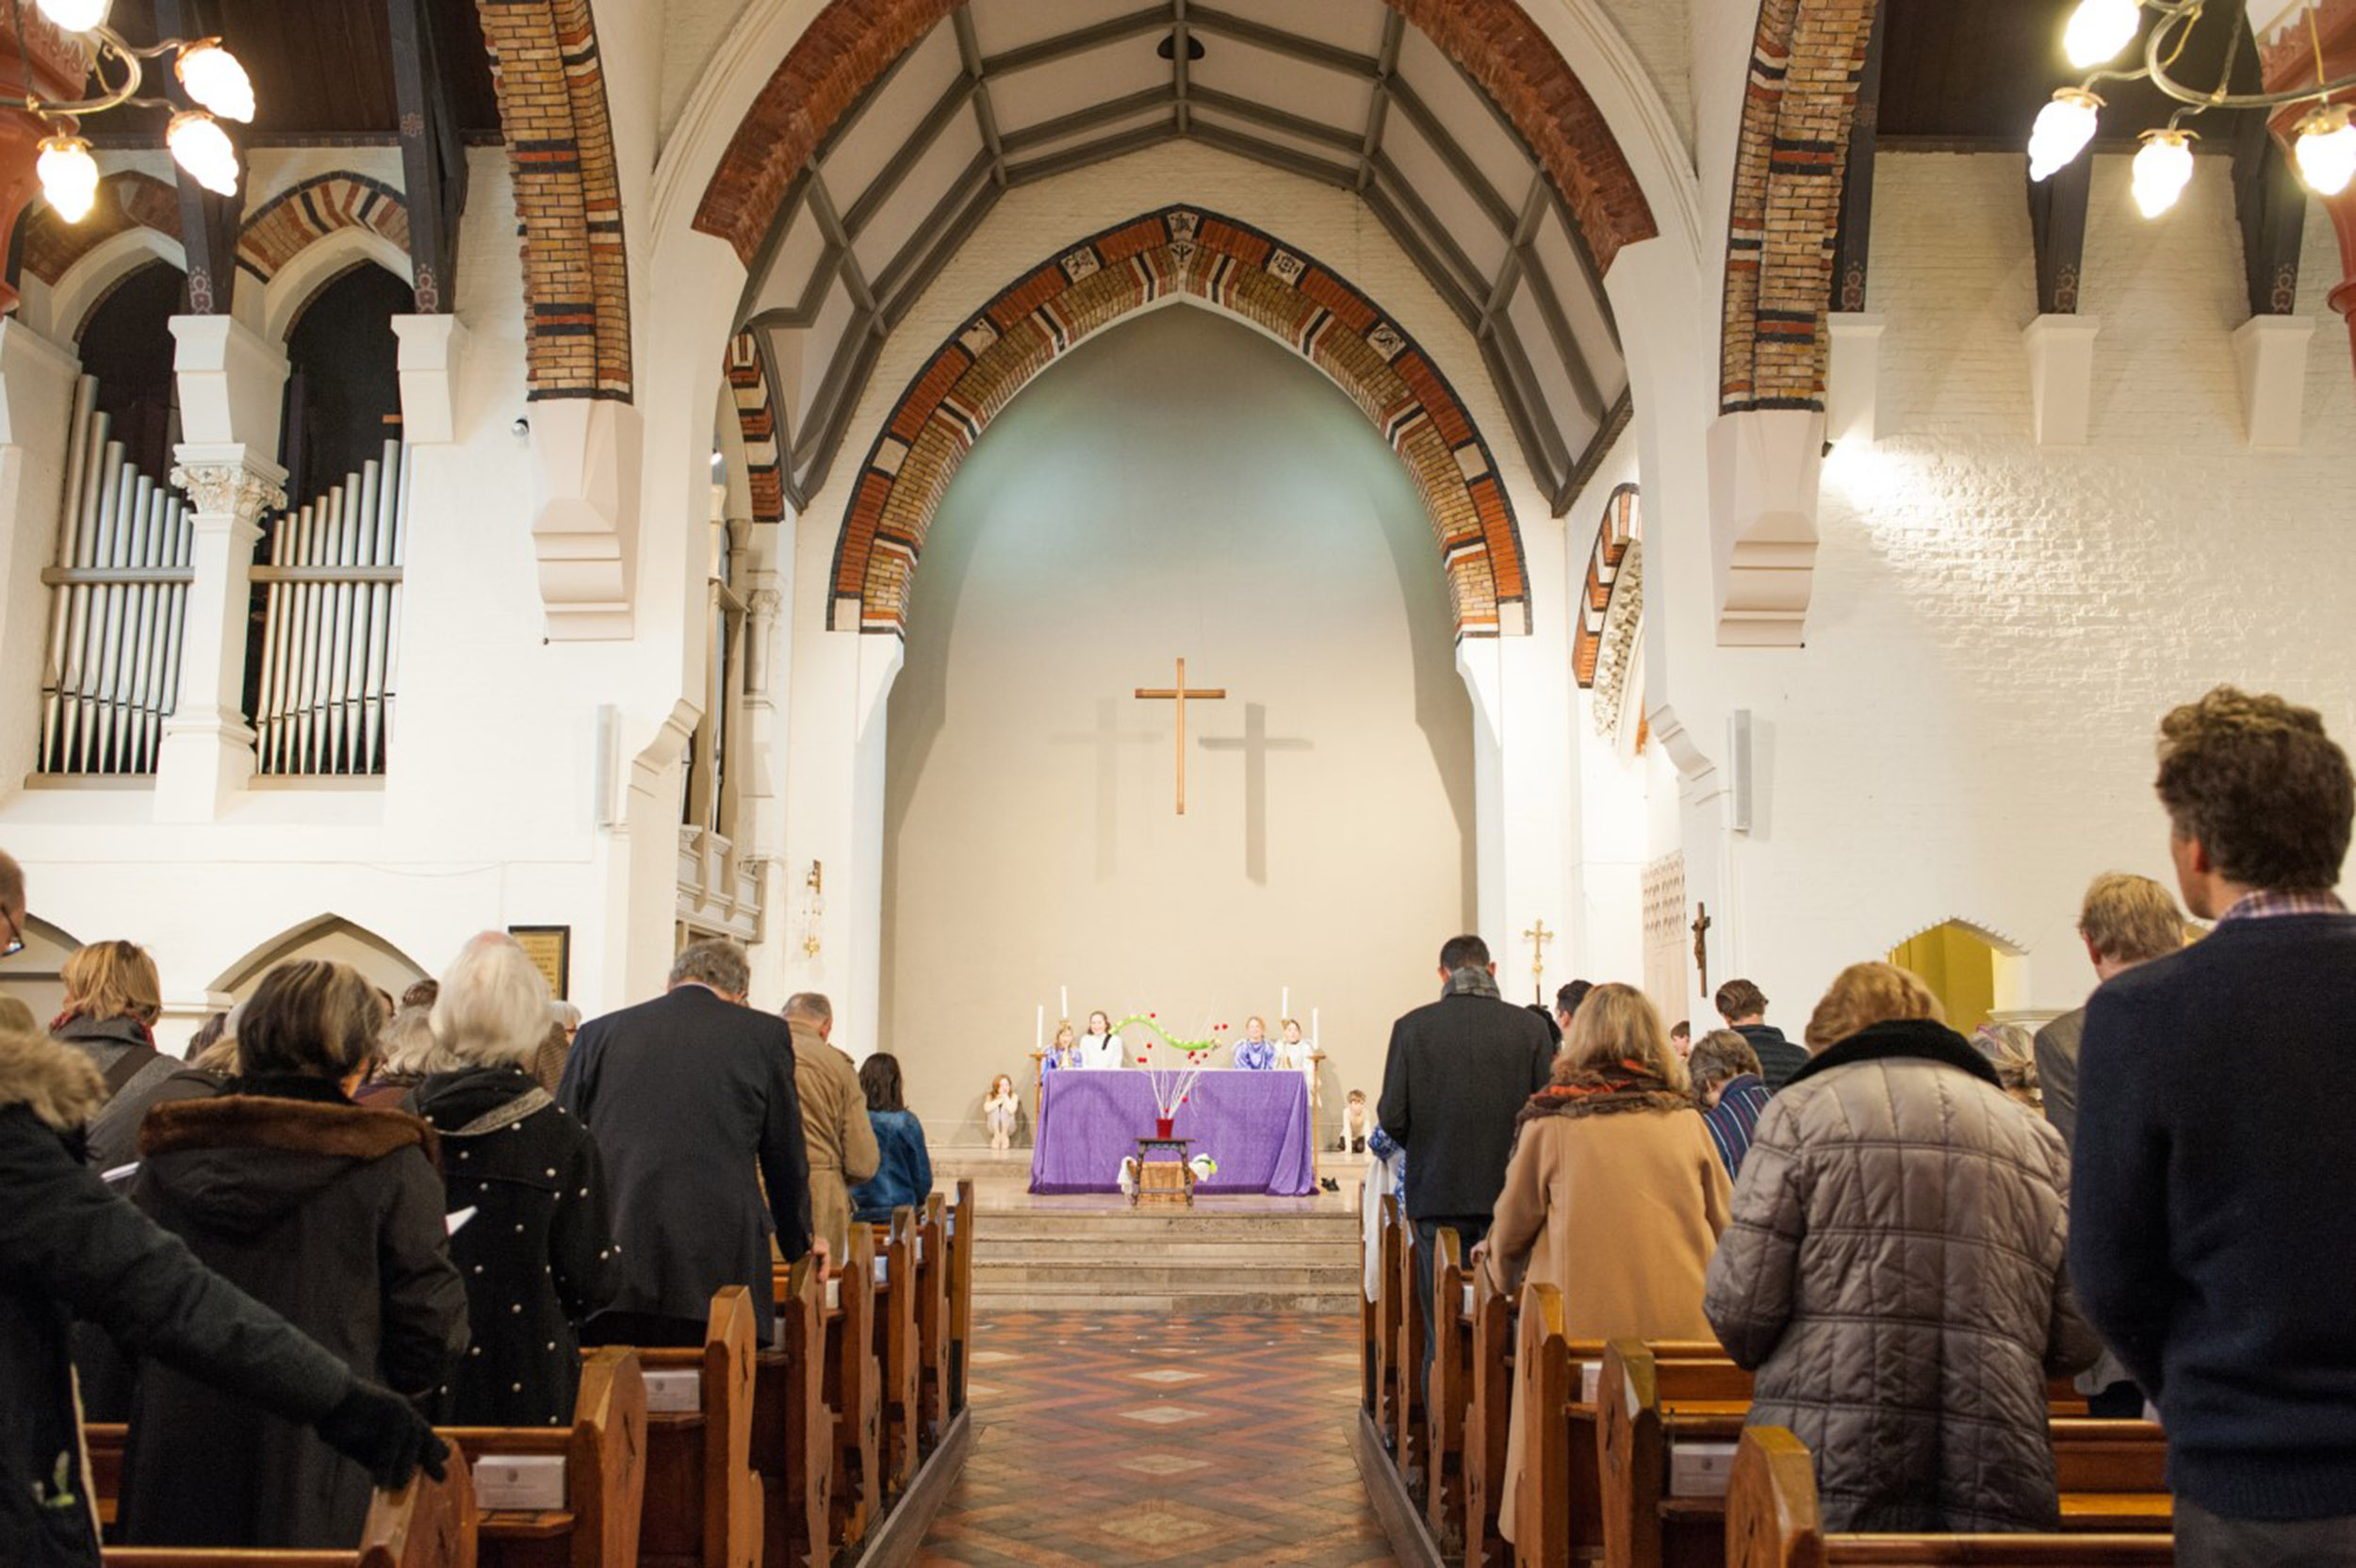 United-Benefice-of-Holland-Park-St-Georges-Image-No-2.jpg